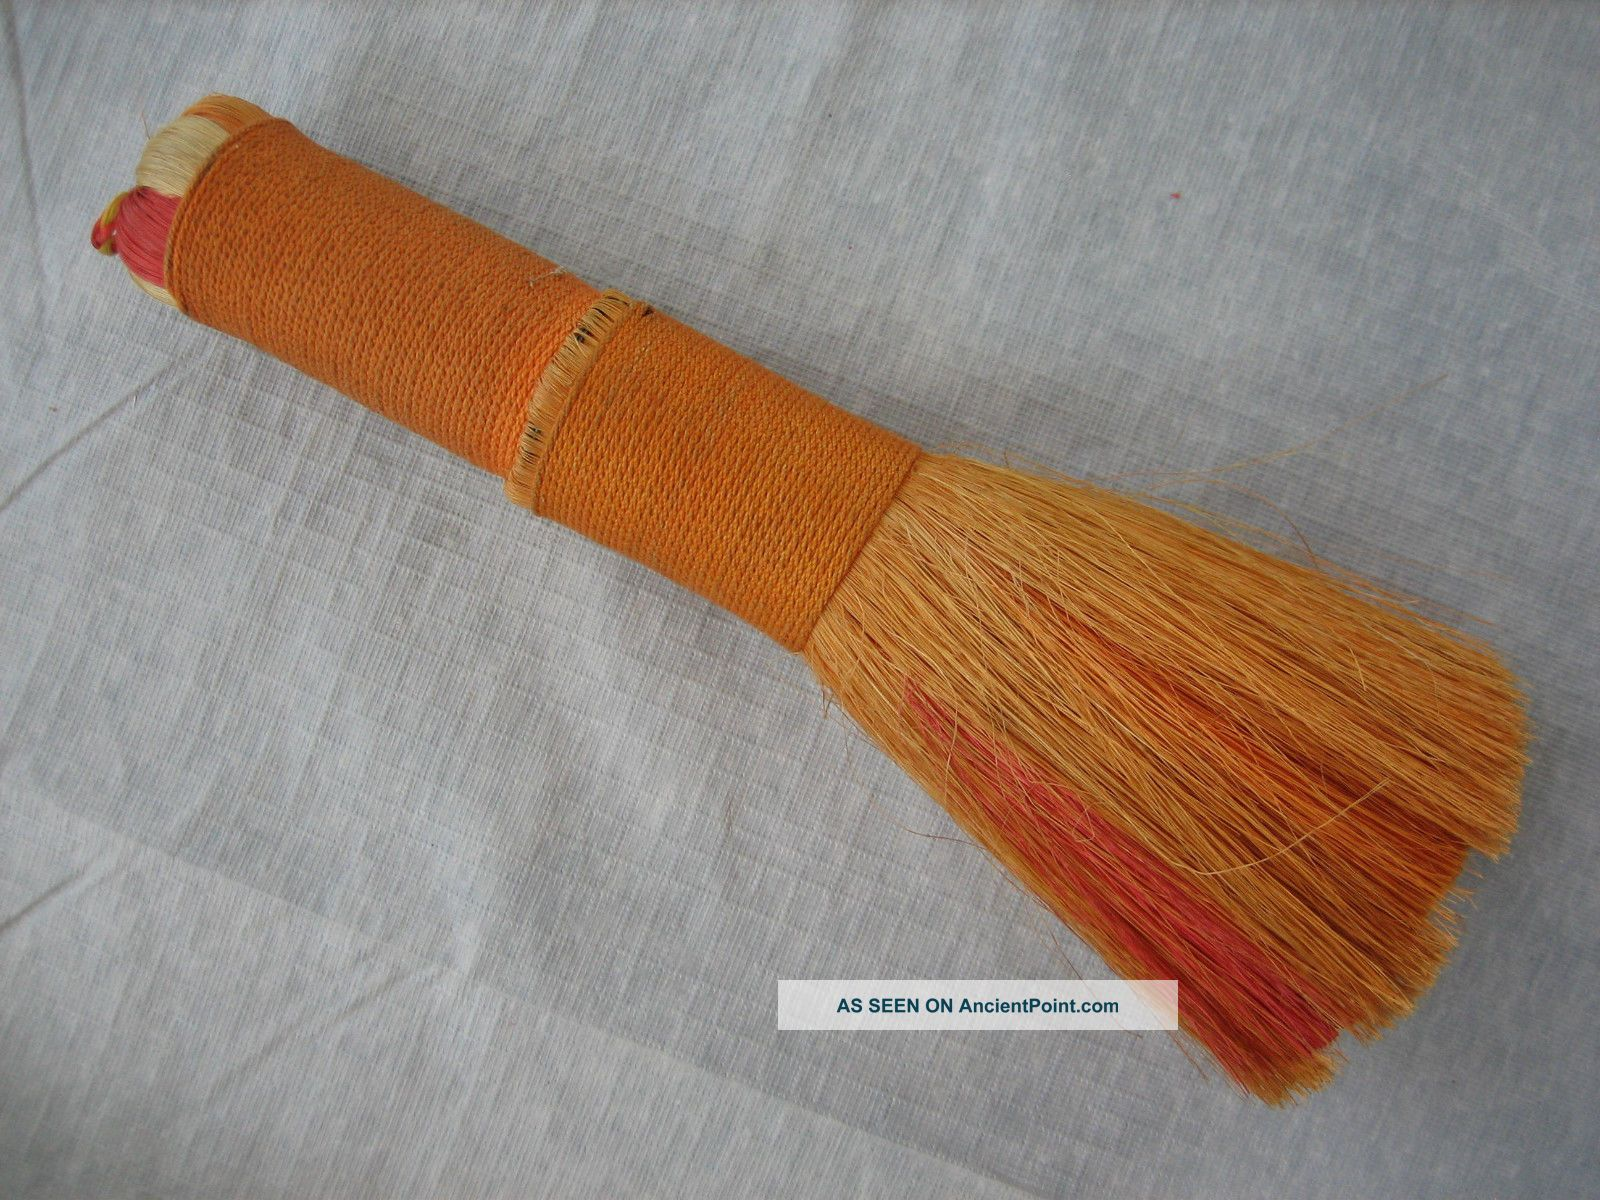 Vintage Handmade Wound Multicolor Orange Whisk Broom - 9.  5 Inch Hearth Ware photo